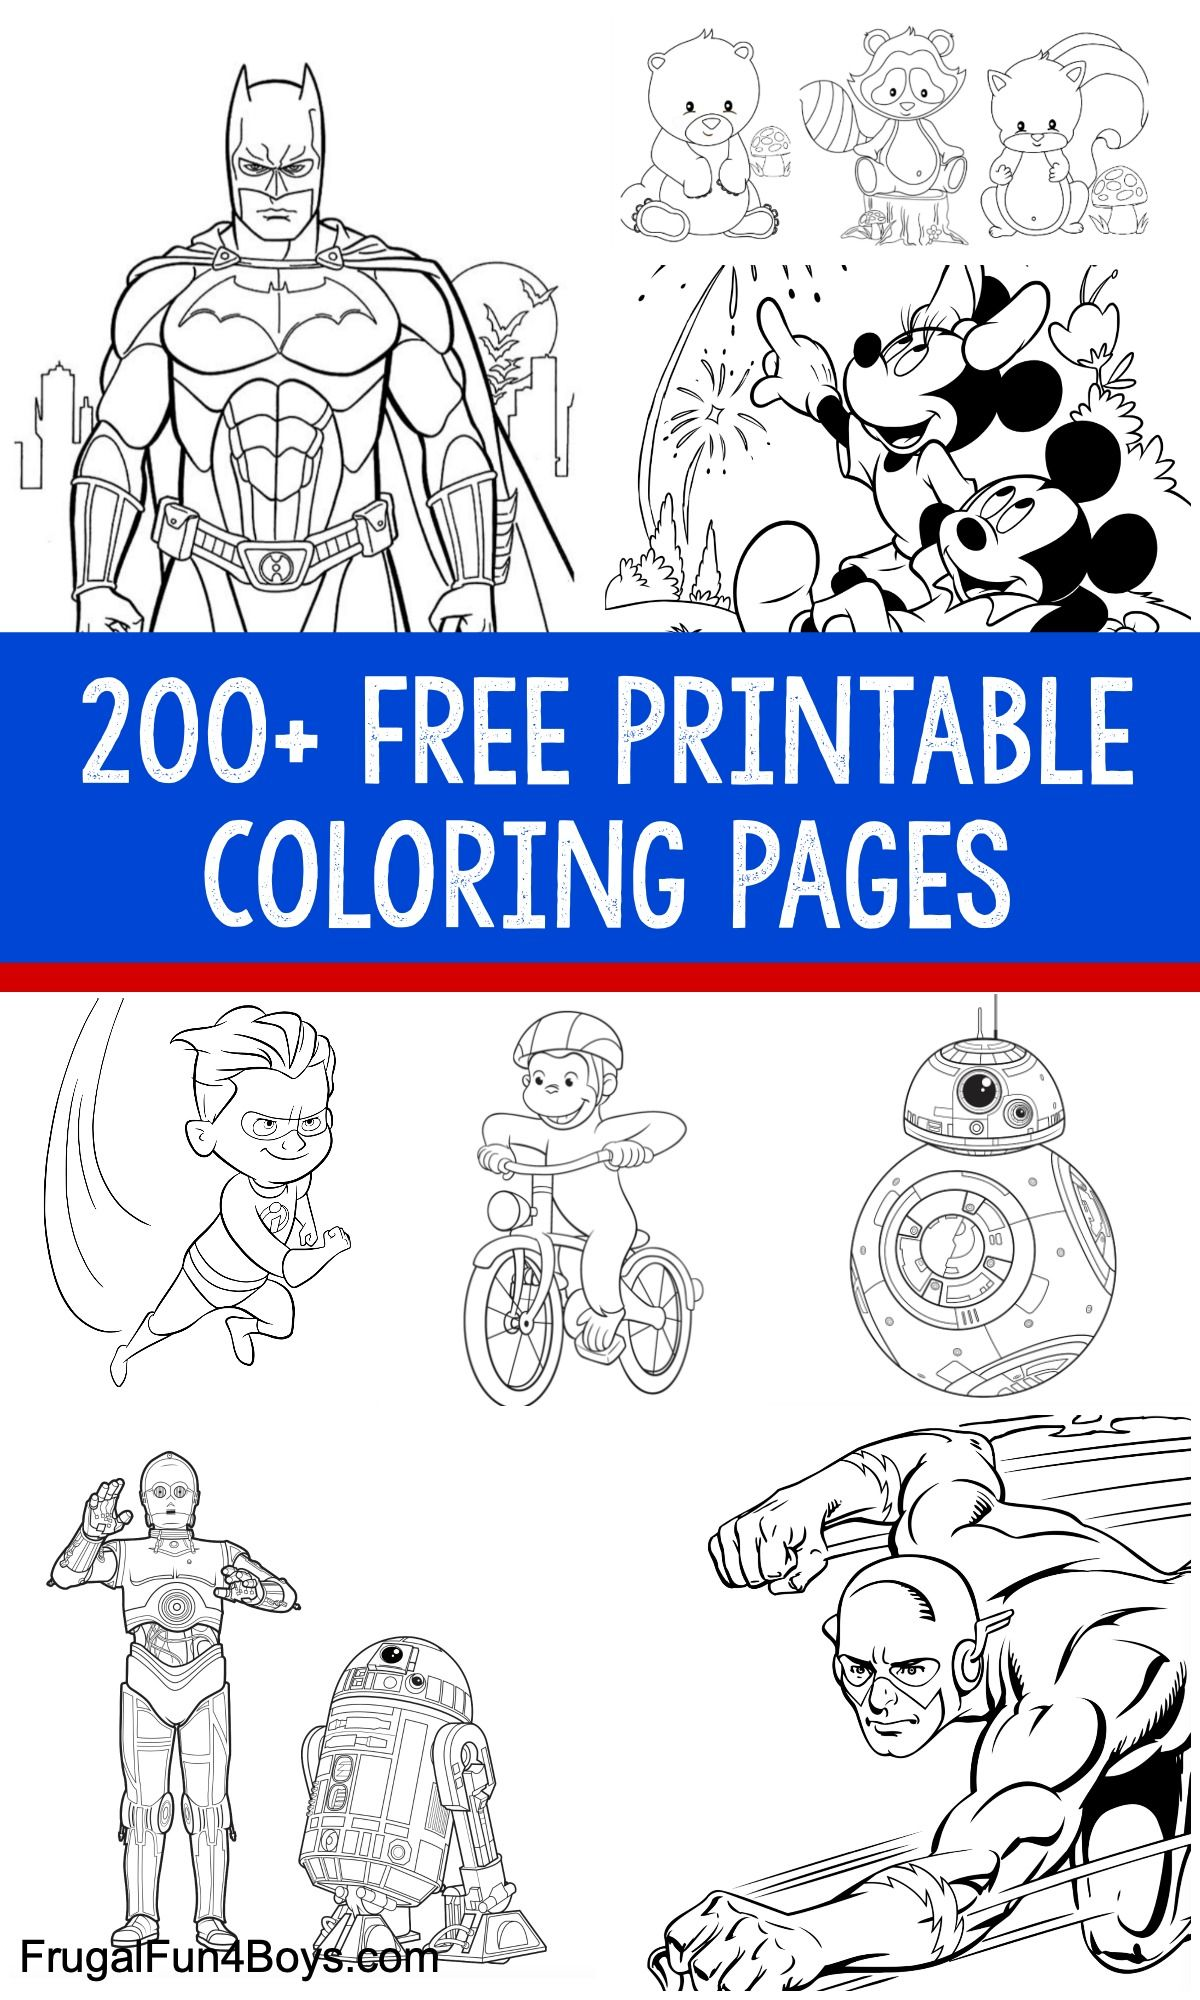 200 Printable Coloring Pages For Kids Frugal Fun For Boys And Girls Kids Printable Coloring Pages Coloring Pages For Boys Free Printable Coloring Pages [ 2000 x 1200 Pixel ]